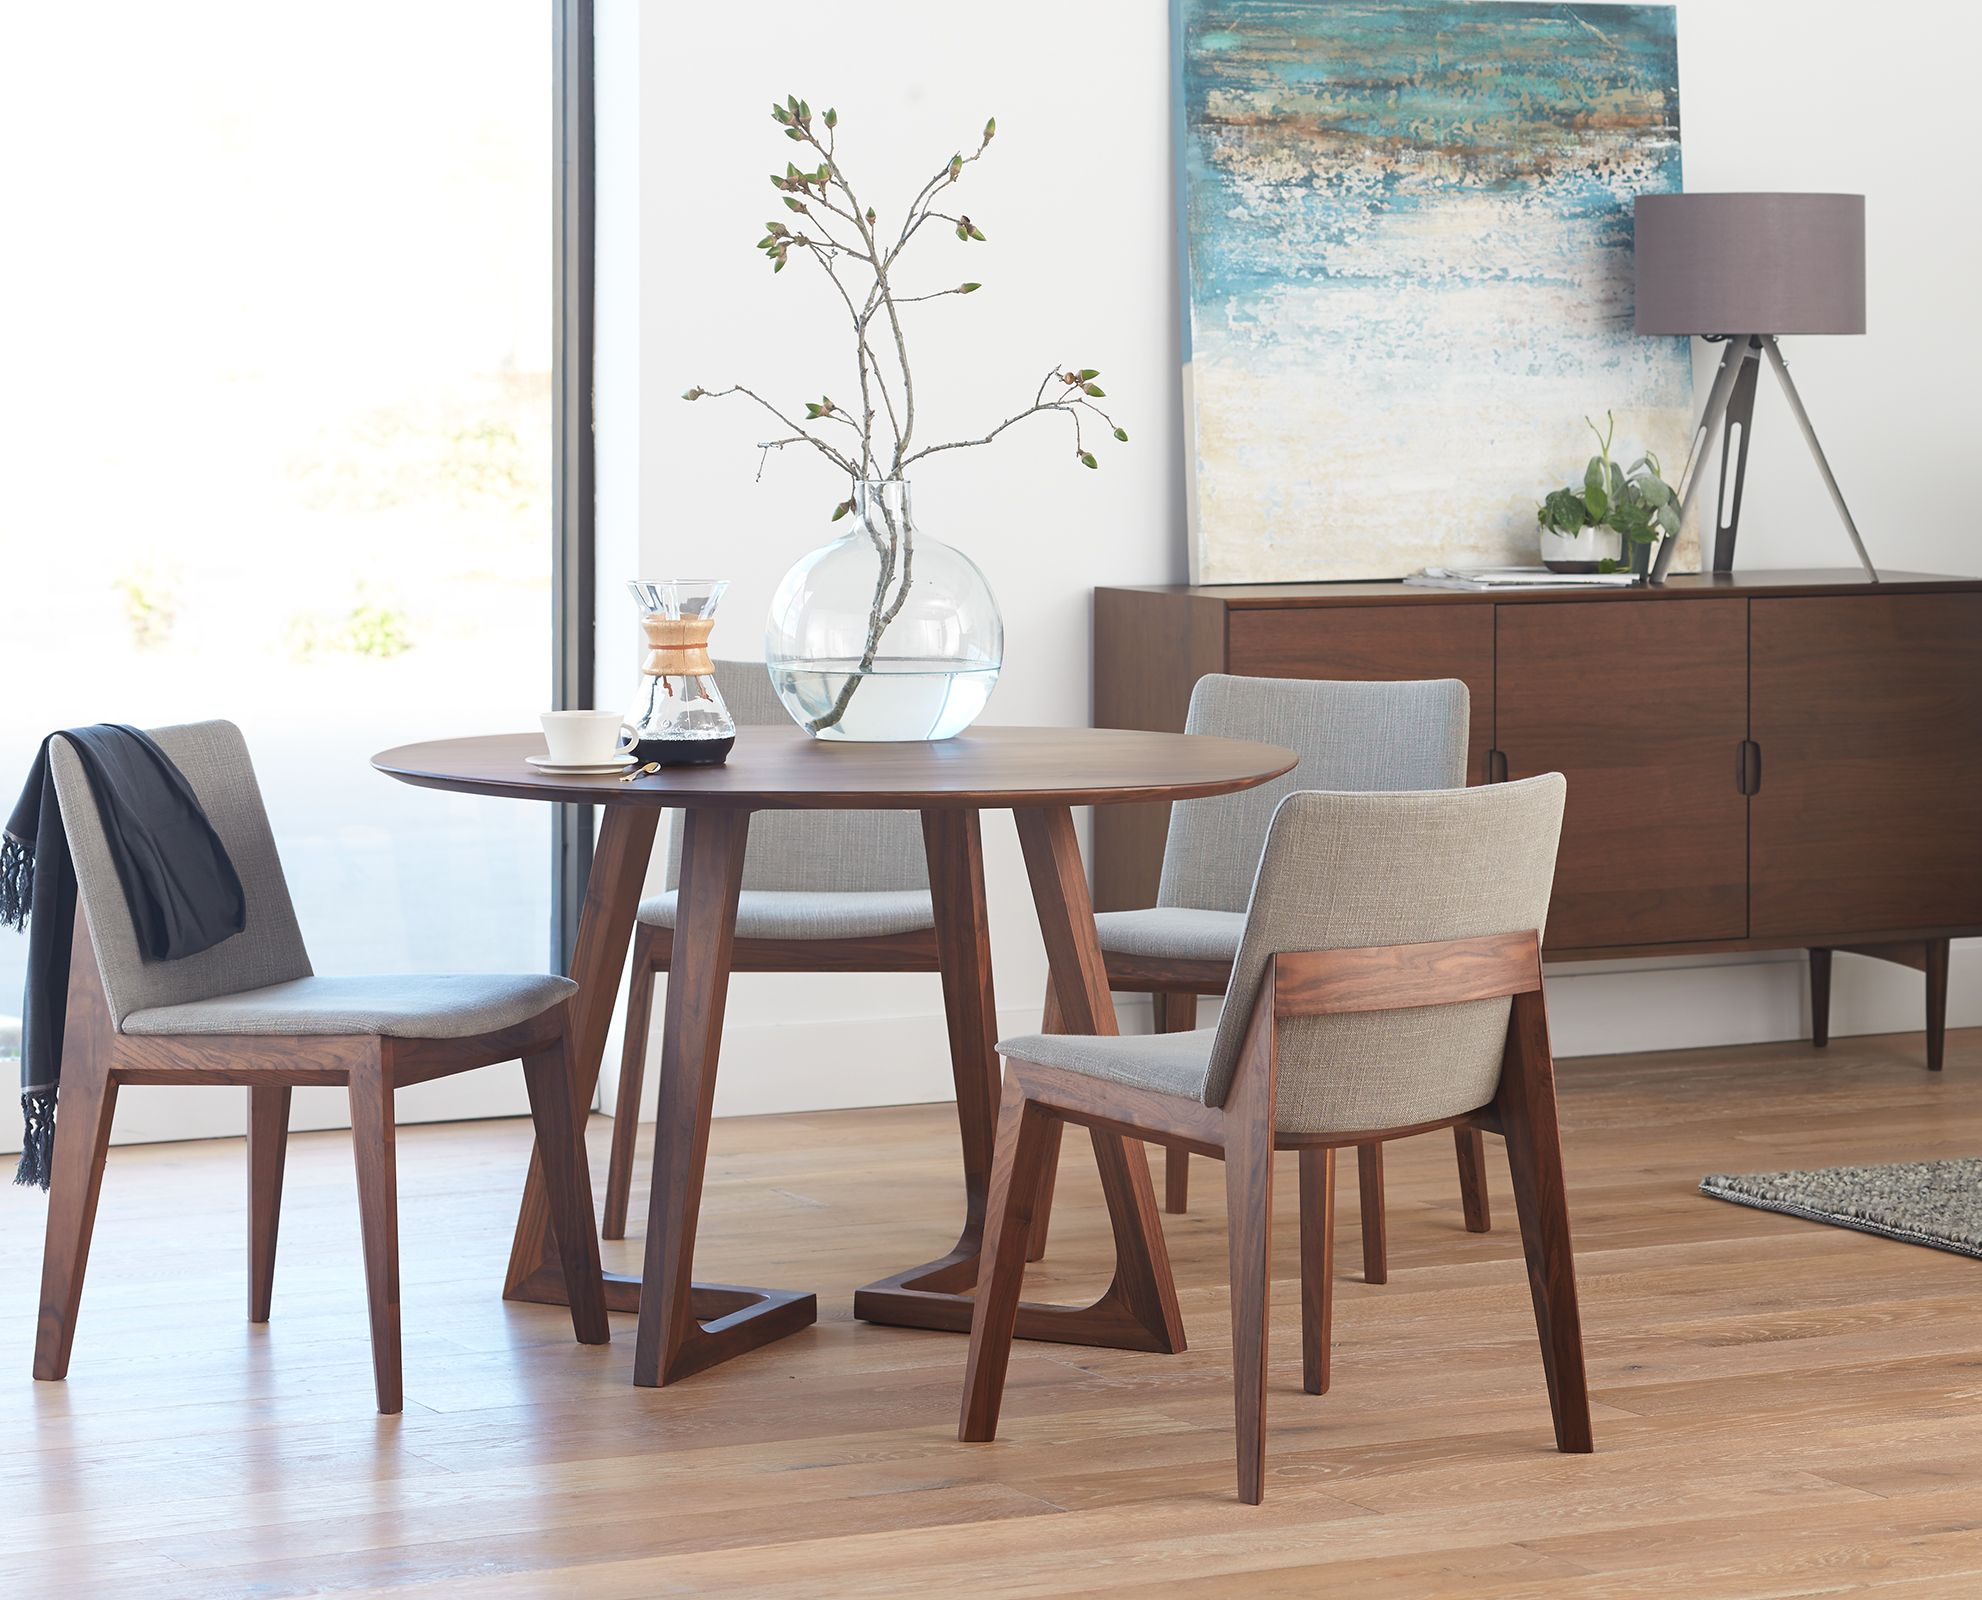 Round table and chairs from Dania Condo